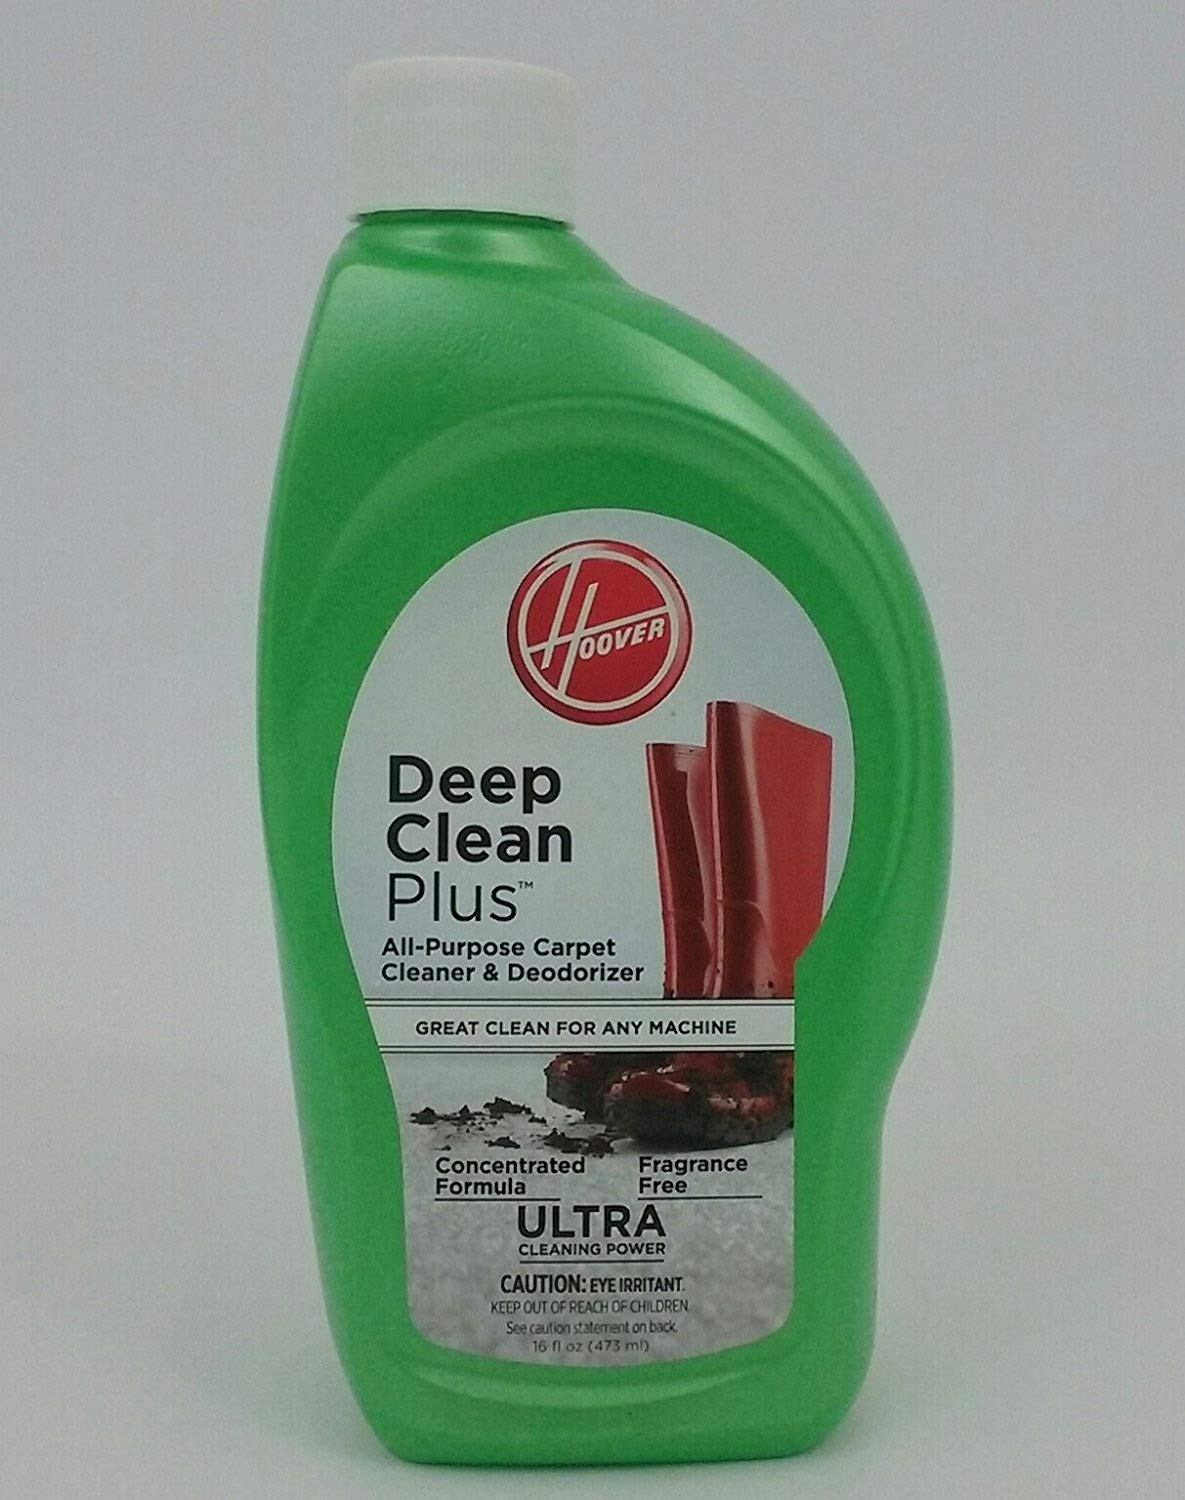 16 OZ Hoover Deep Clean Plus All Purpose Carpet Cleaner Concentrated Formula